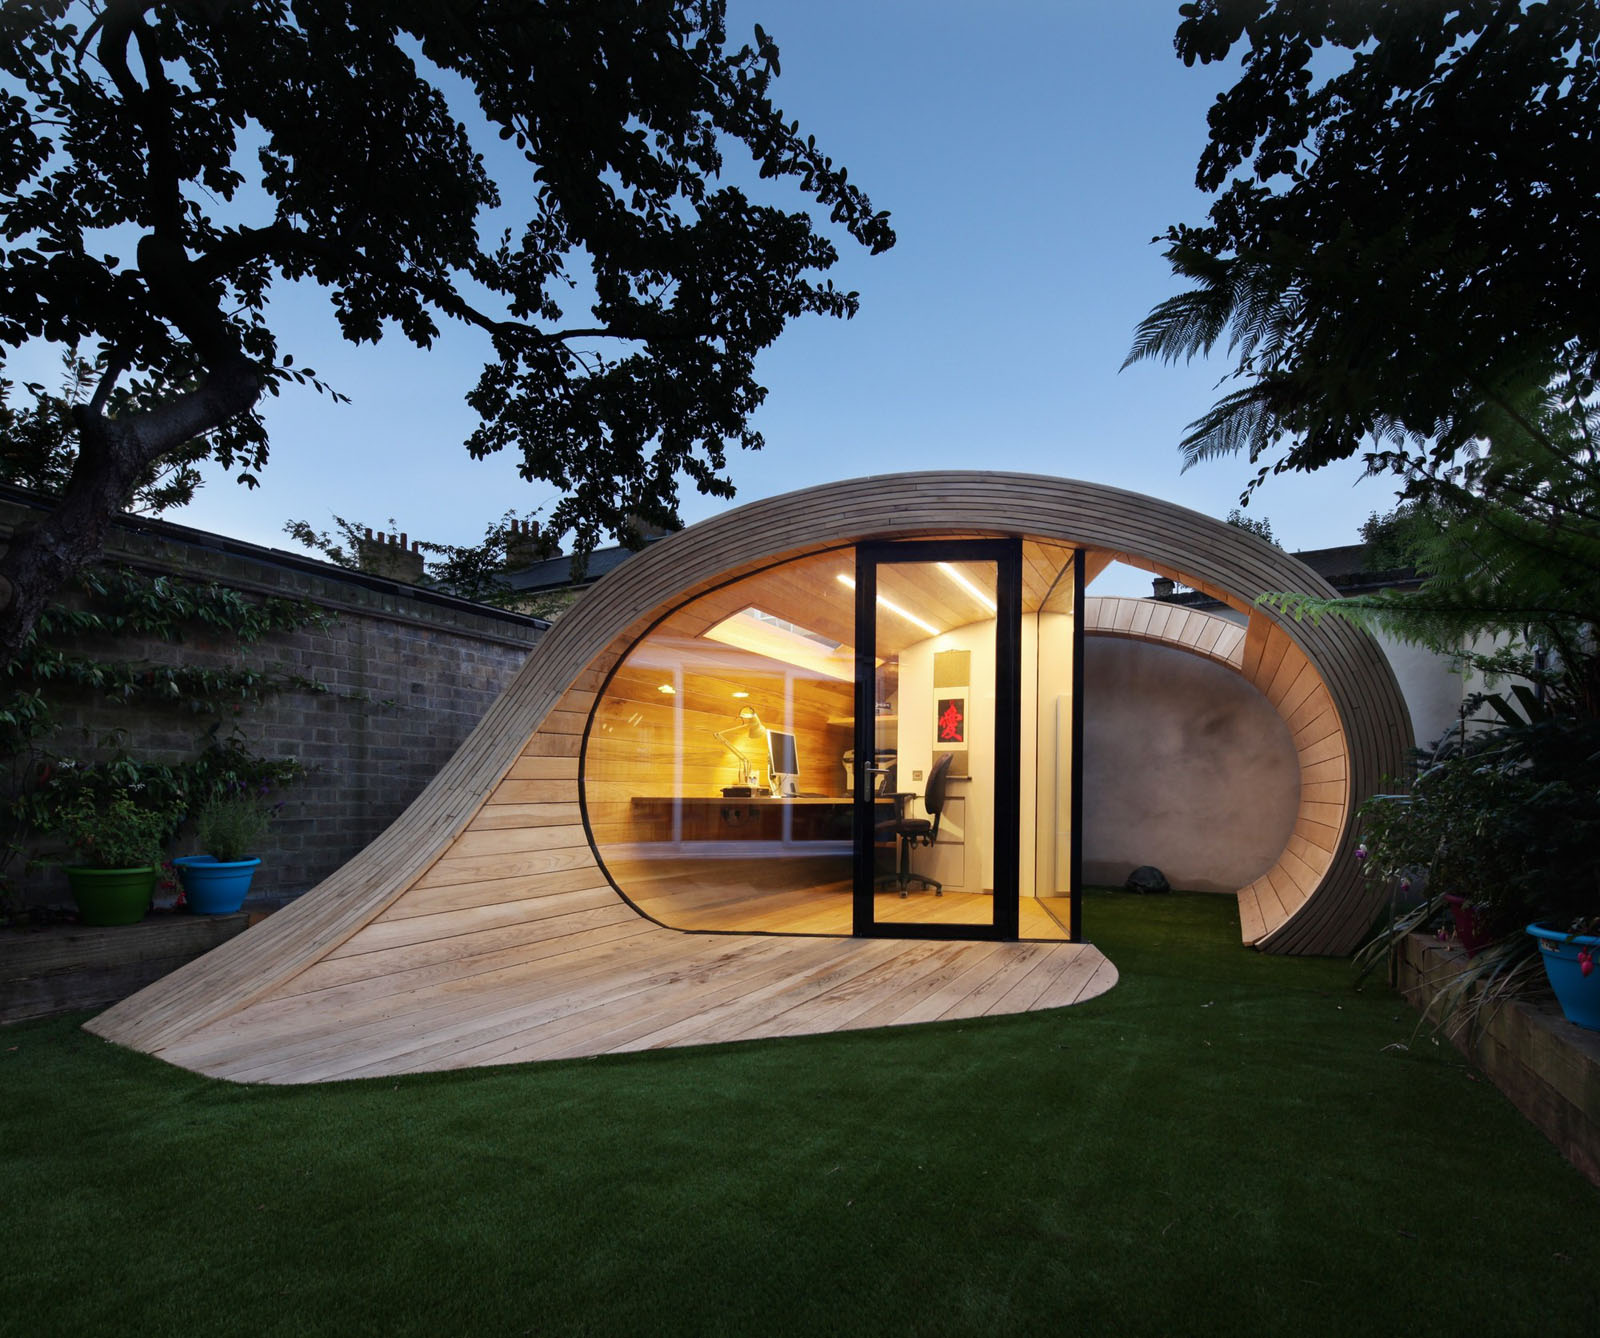 This Unique Timber Elliptical Shell Is A Lightweight U201cShofficeu201d (shed +  Office) Located In The Backyard Of A 1950u0027s Terraced House In St Johnu0027s  Wood, ...